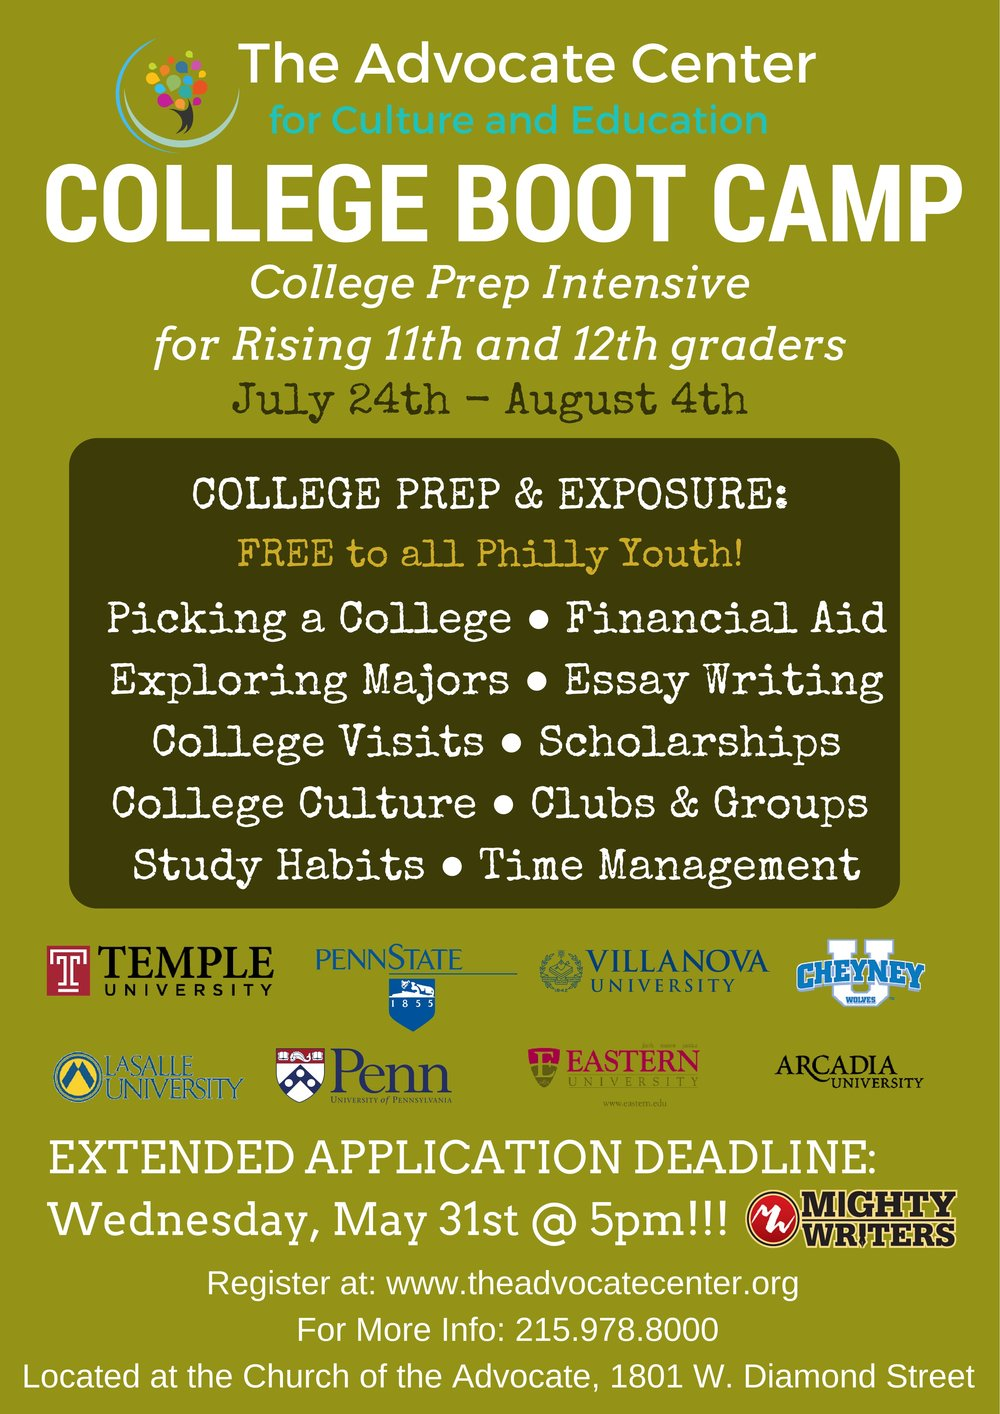 FLYER_College Boot Camp_Summer 2017 (1).jpg